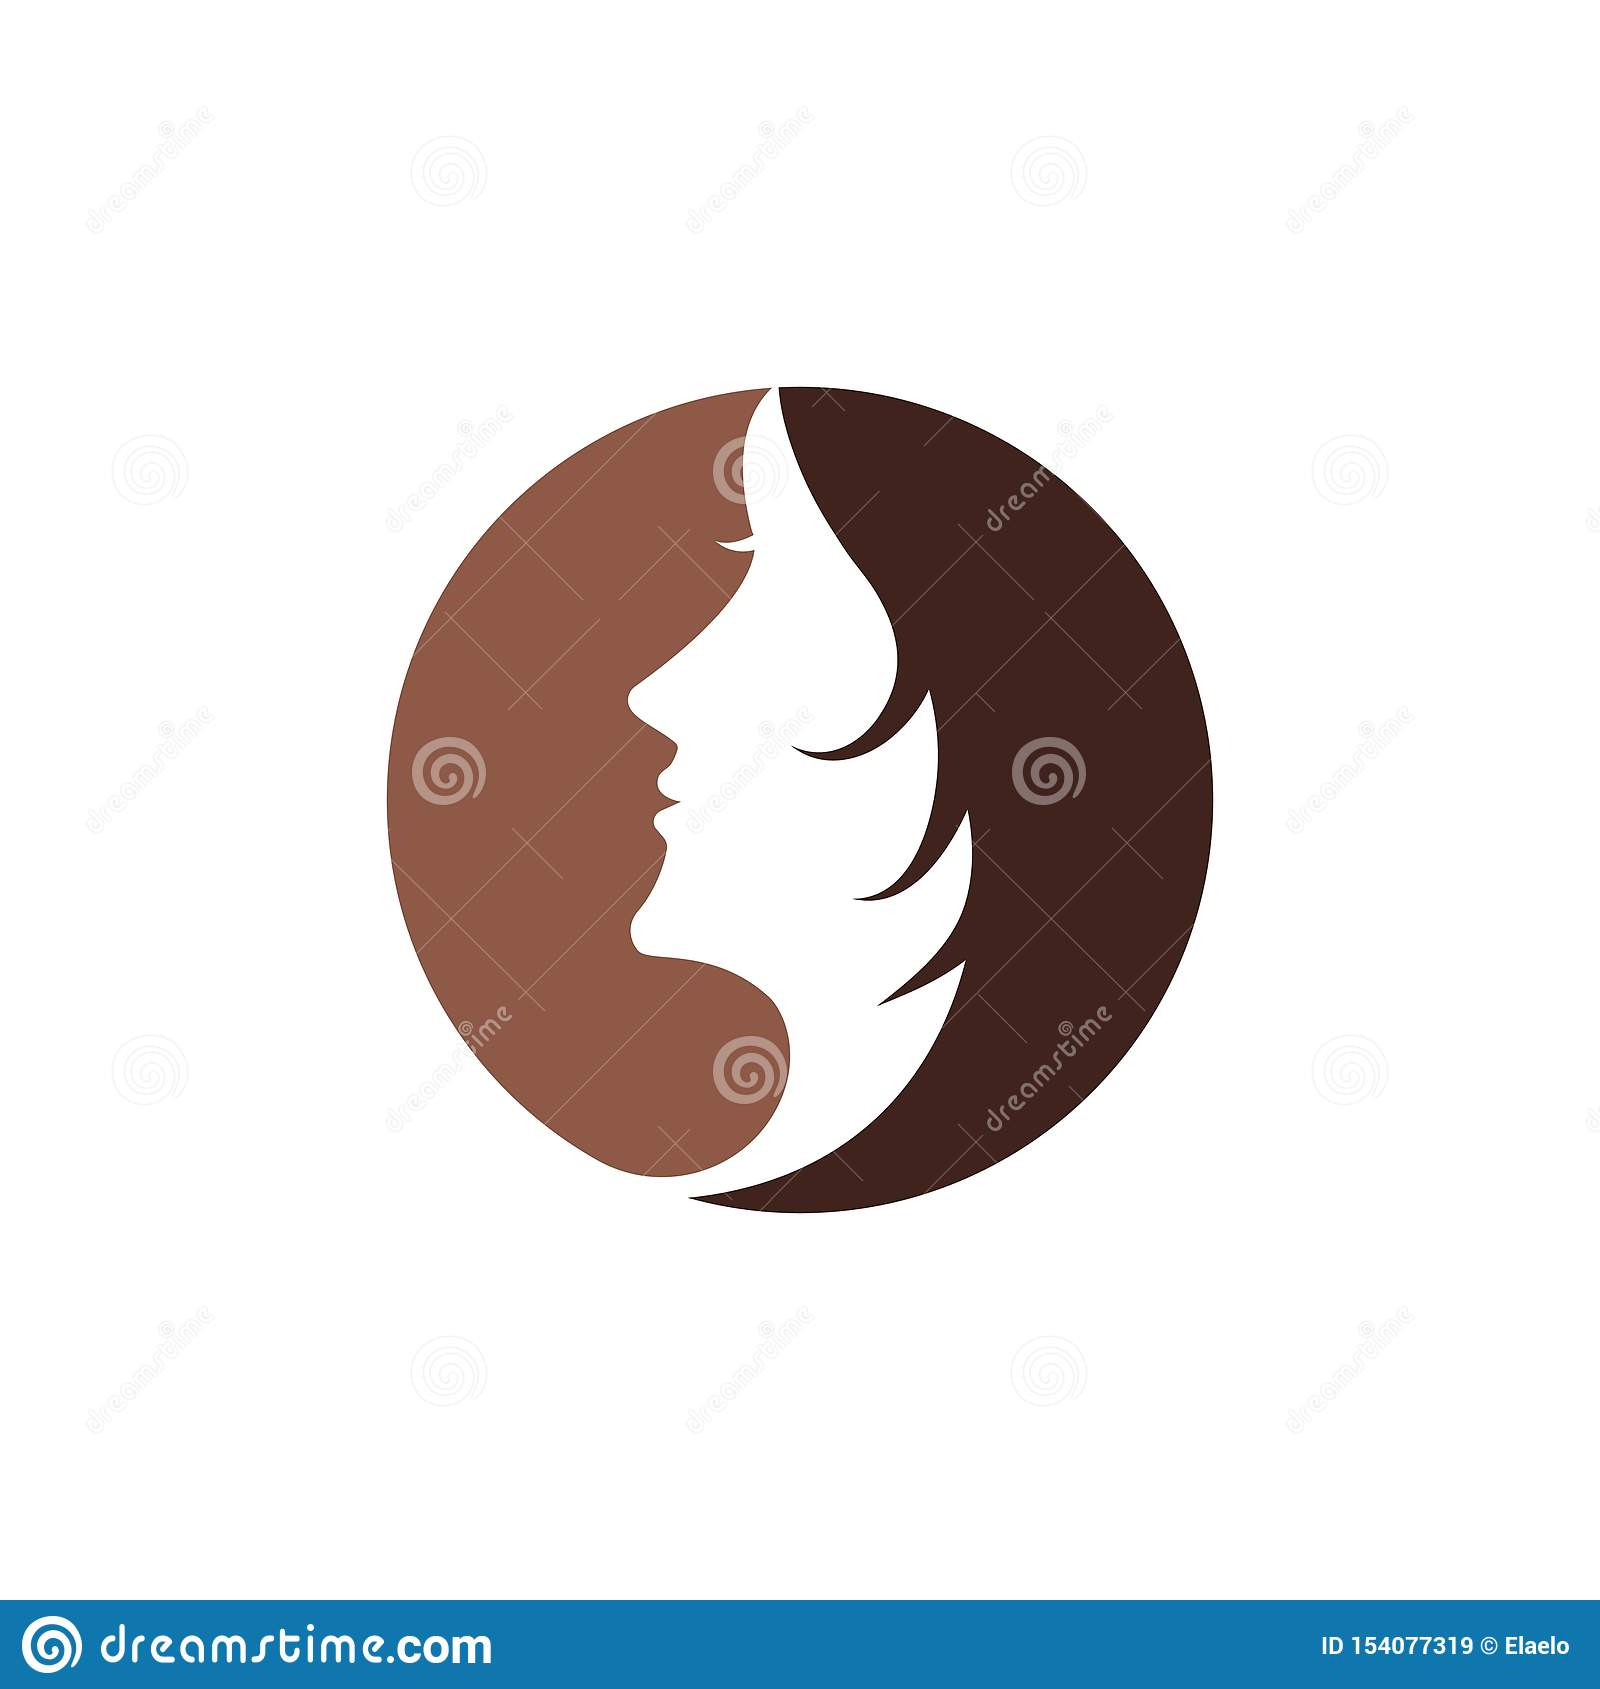 Woman face silhouette